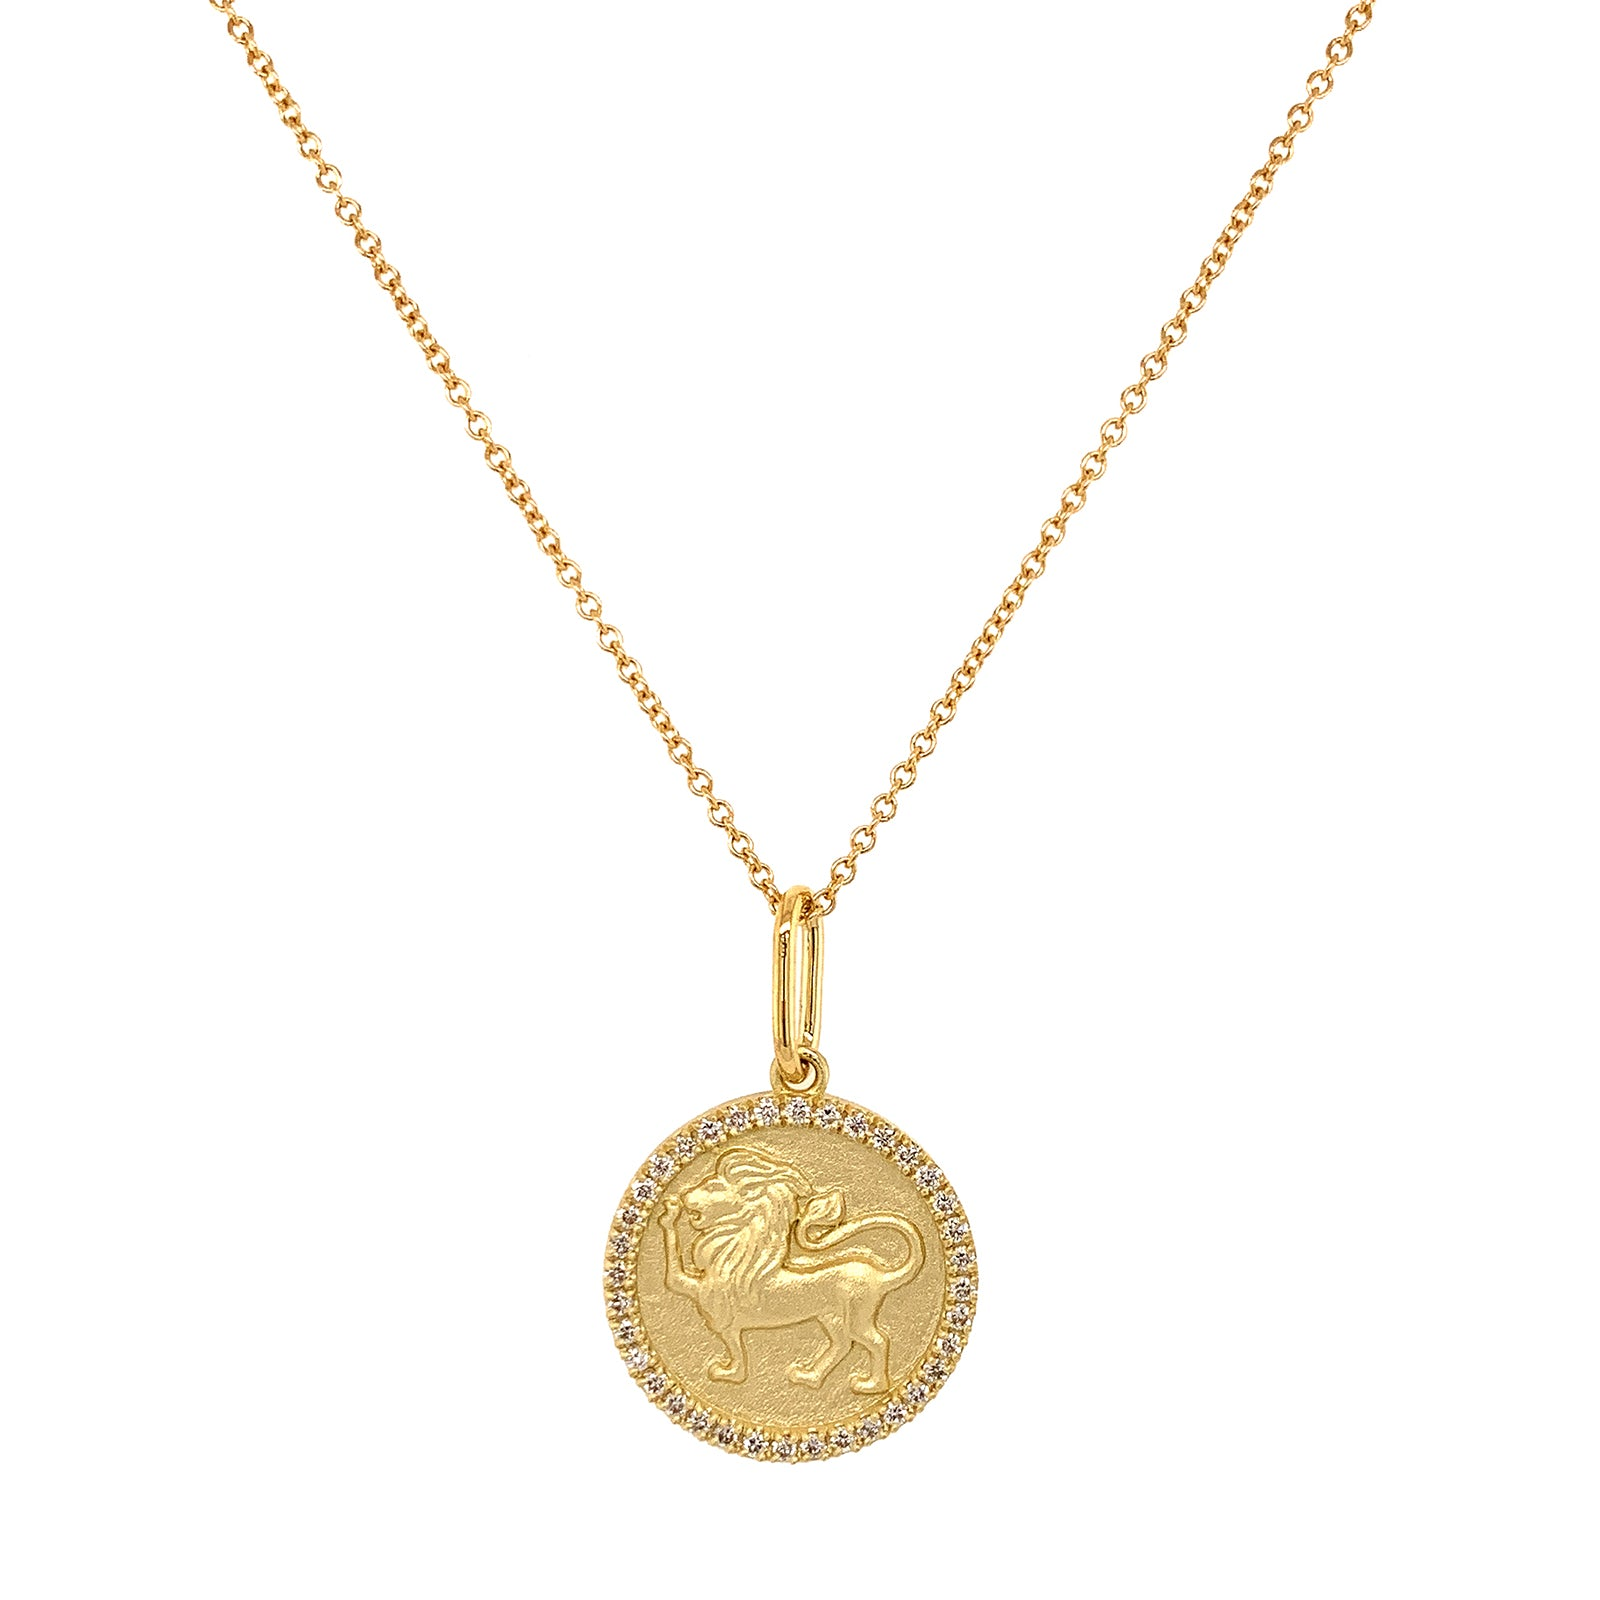 Colette Zodiac Necklace - Leo - Necklaces - Broken English Jewelry